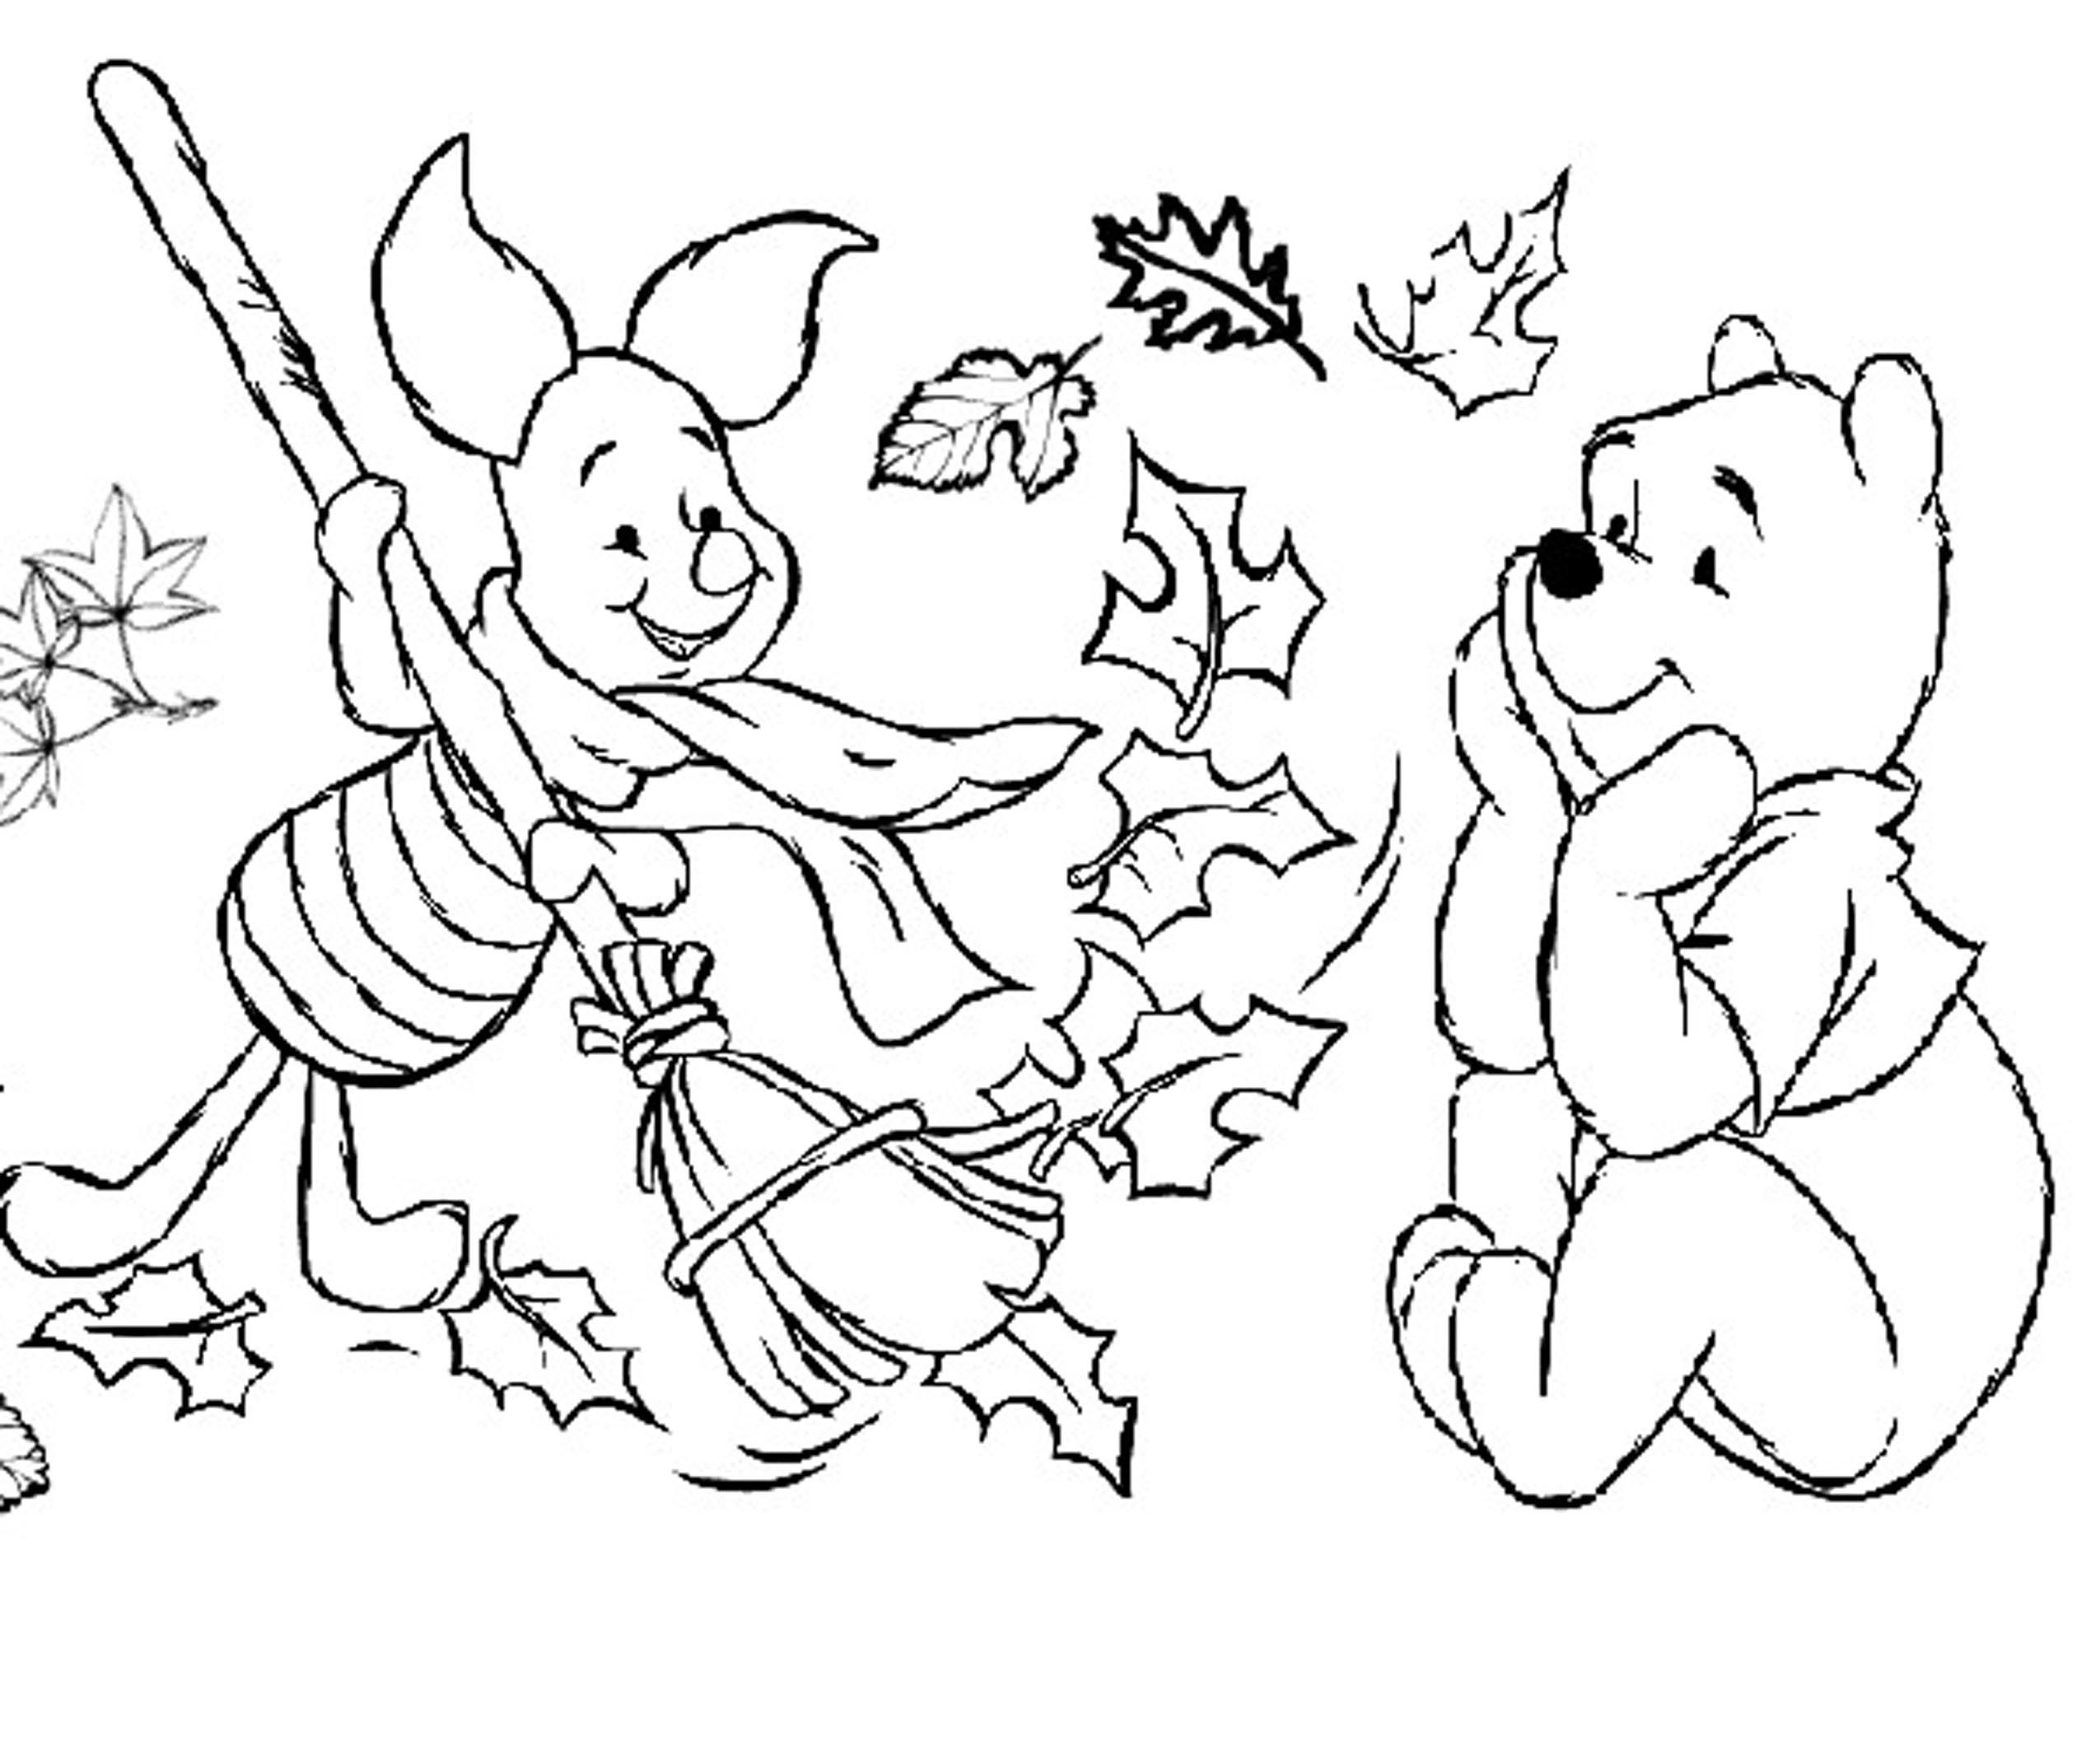 Disney Fall Coloring Pages Printable Fall Coloring Pages Dinosaur Coloring Pages Animal Coloring Pages